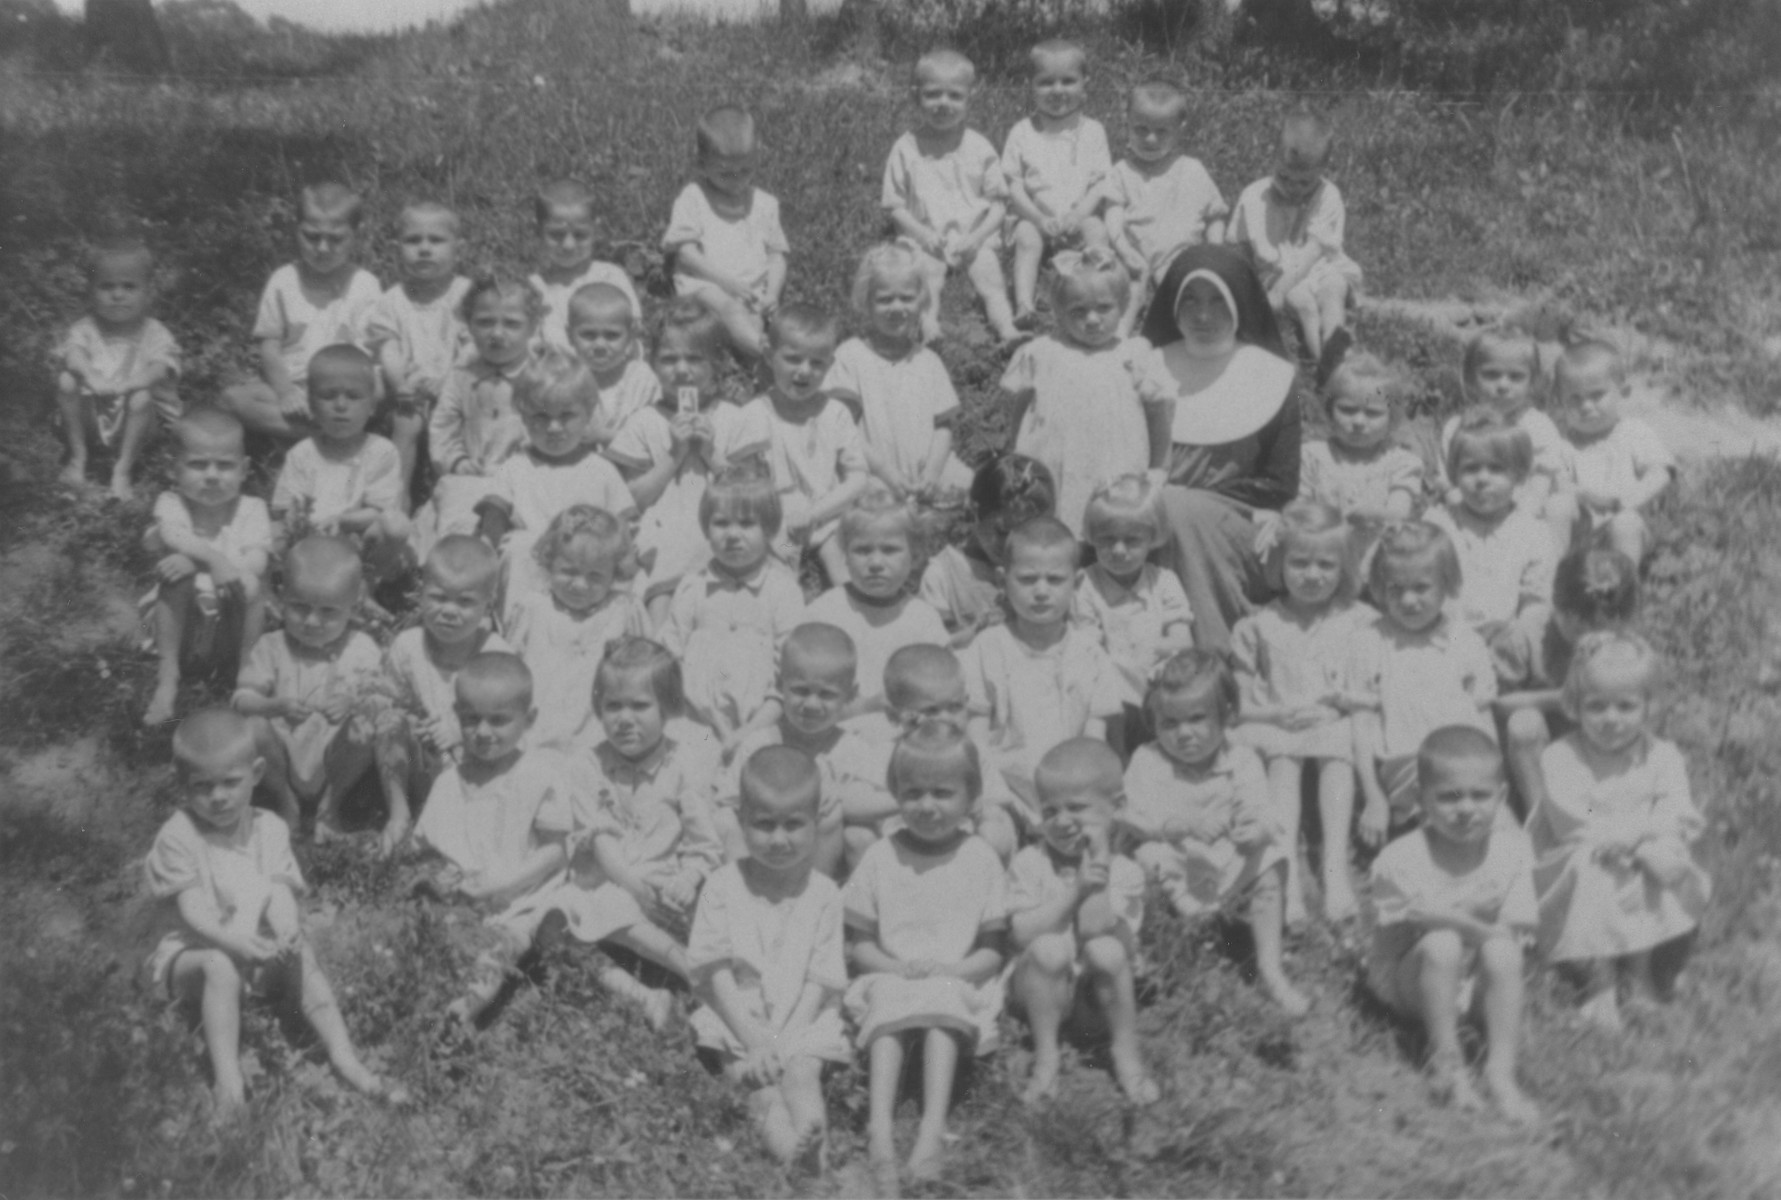 Sister Jadwiga poses with a group of small children at a convent school in Lomna, Poland that sheltered Jewish children during the German occupation.